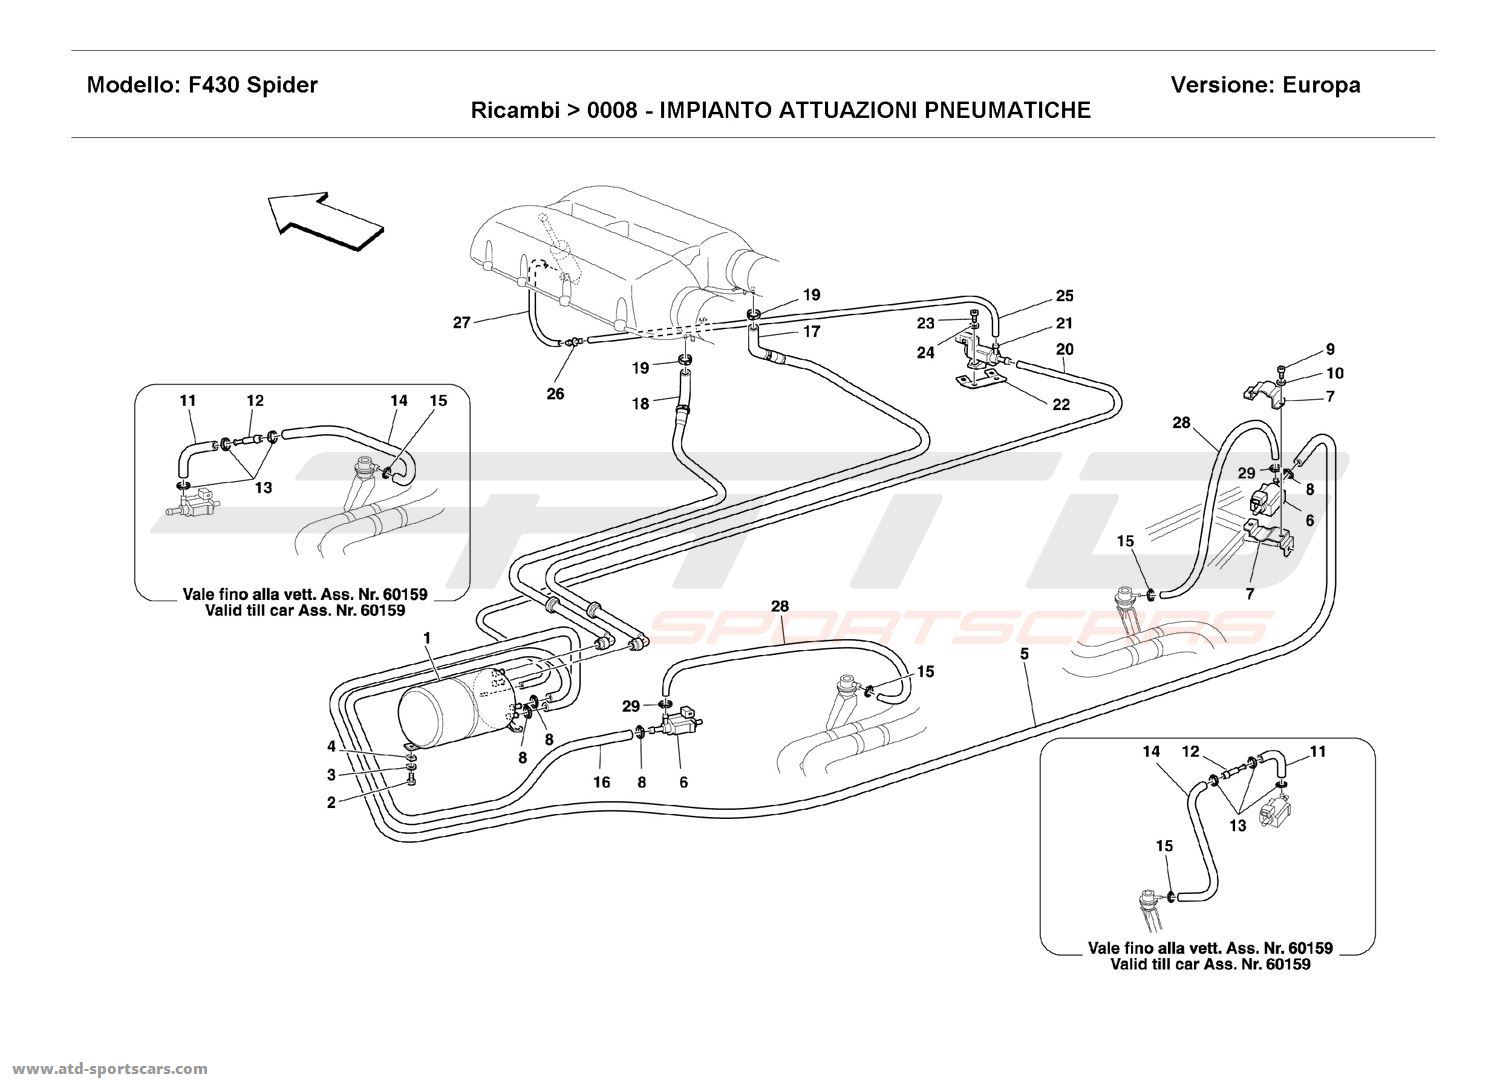 Ferrari F430 Spider Pneumatics Actuator System Parts At